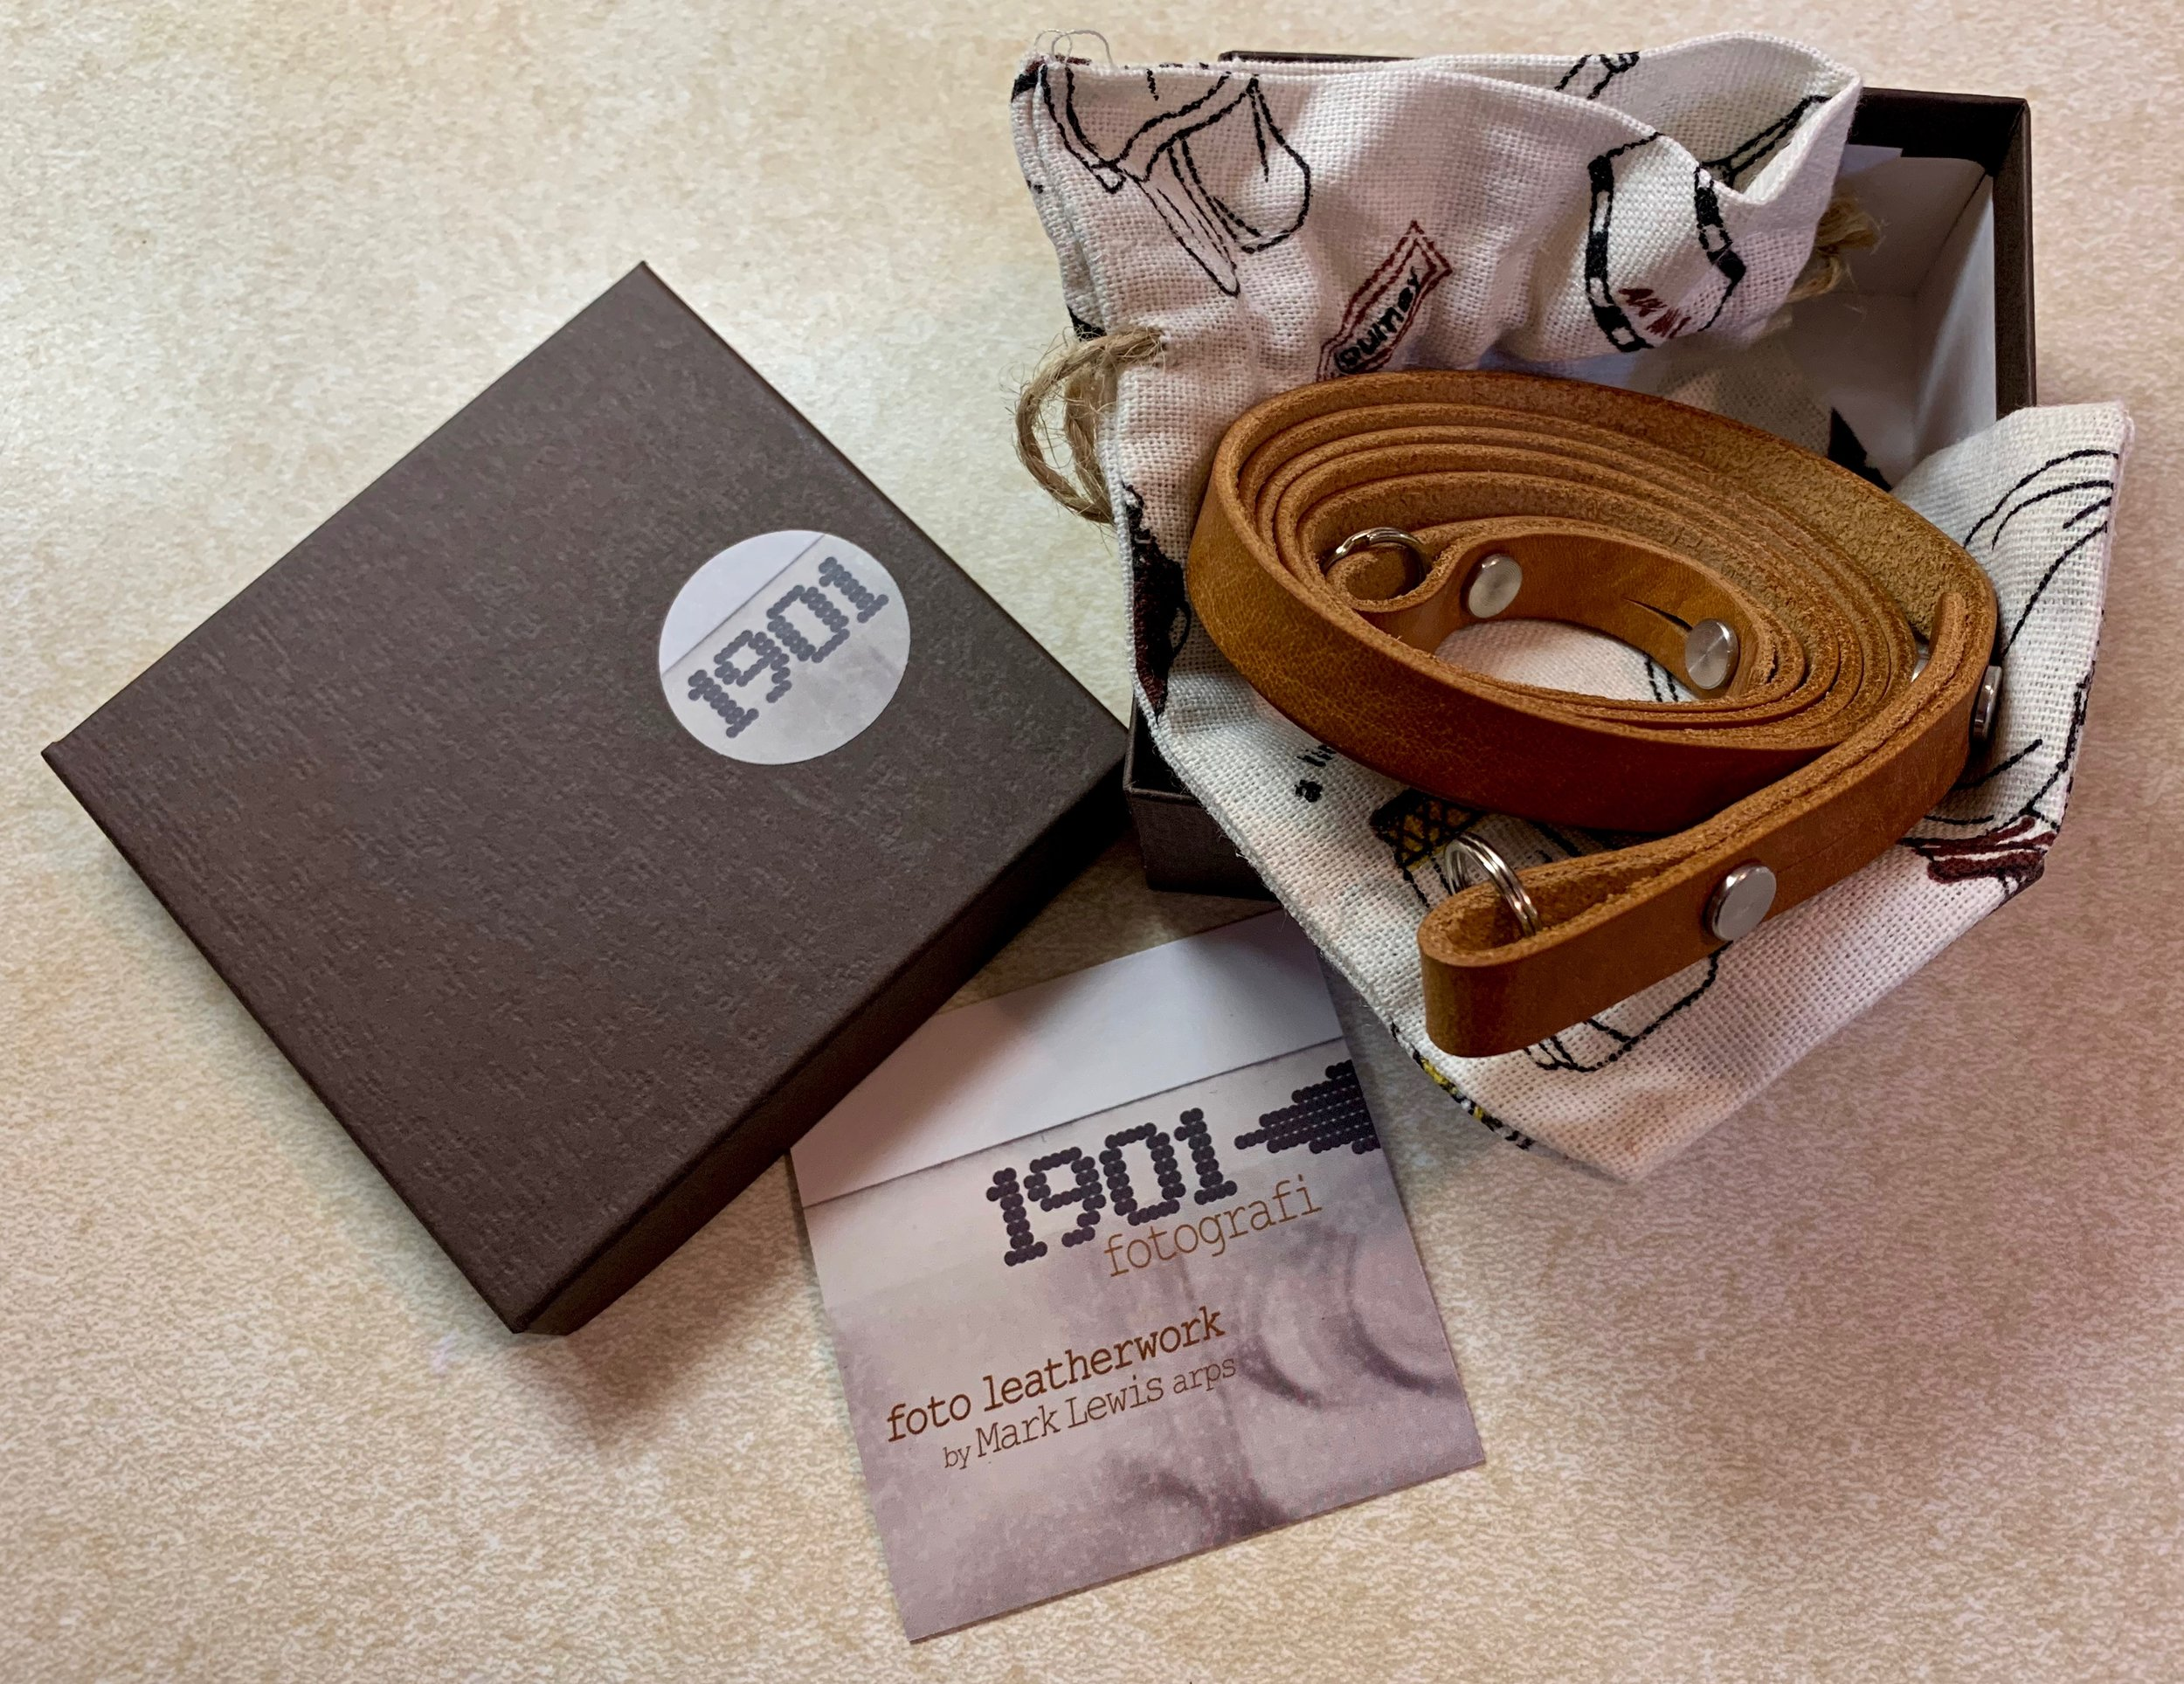 Unboxing a new Eggleseton leather strap is such joy!